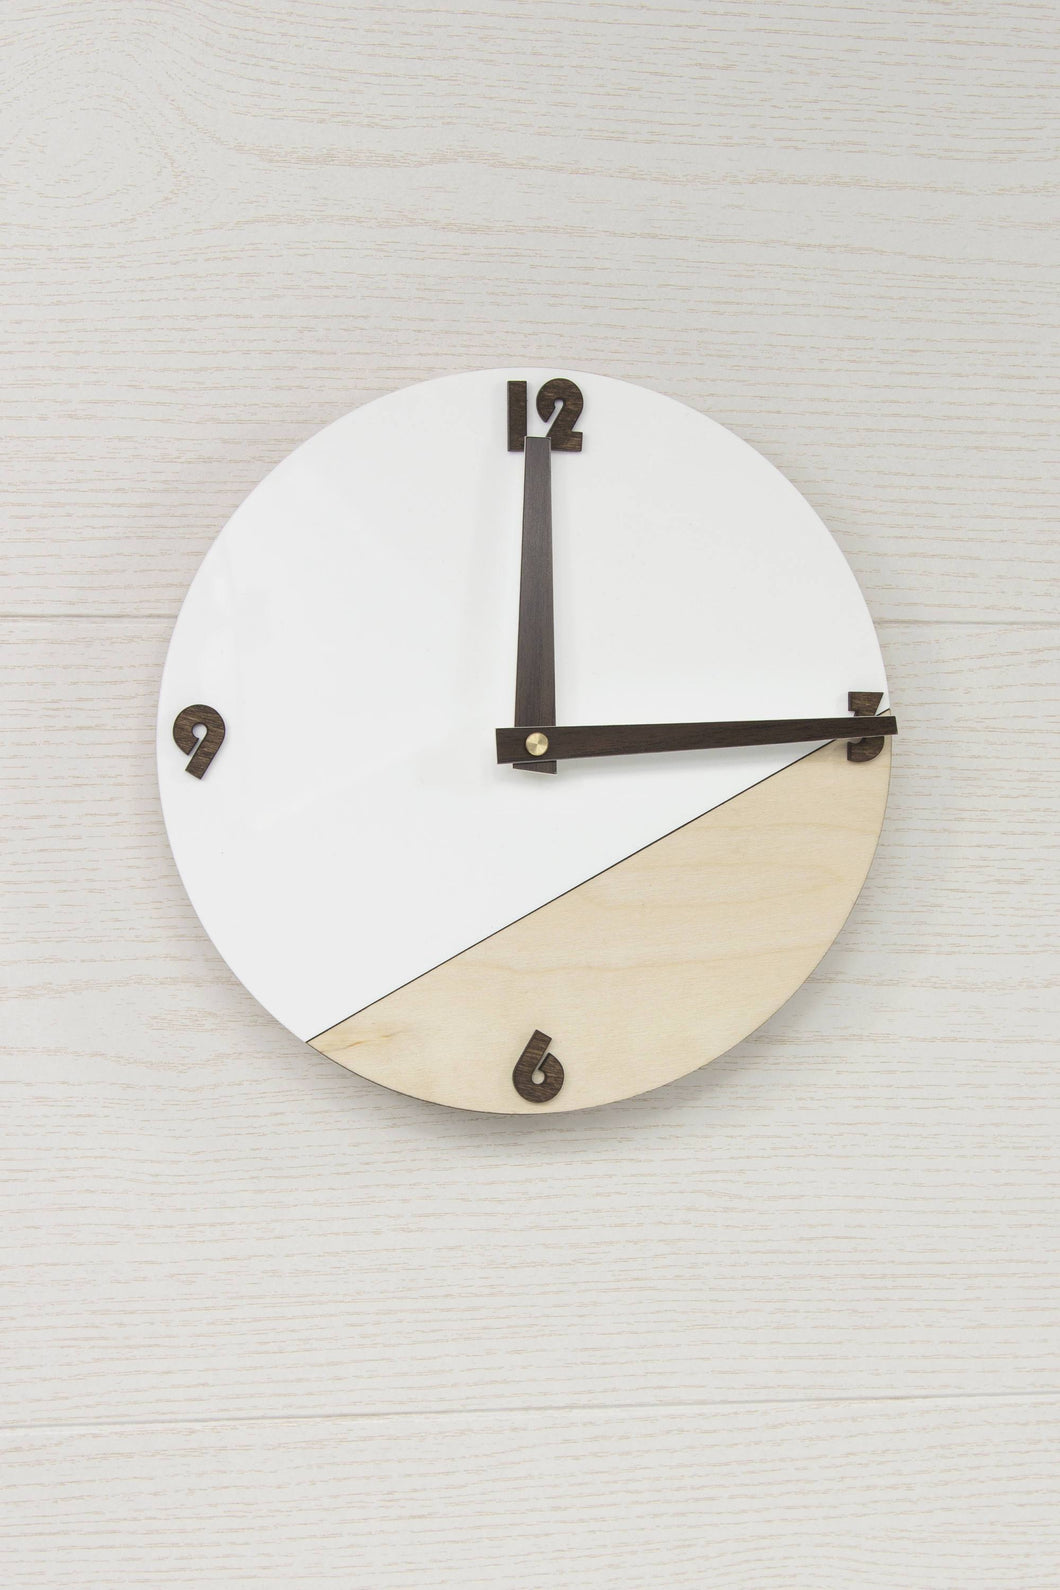 Modern Wall Decor, Round Clock, Minimalist Clock, Wooden Clock, Plywood Clock, White Clock, Rustic Wall Decor, Wall Clock, Wooden Clock